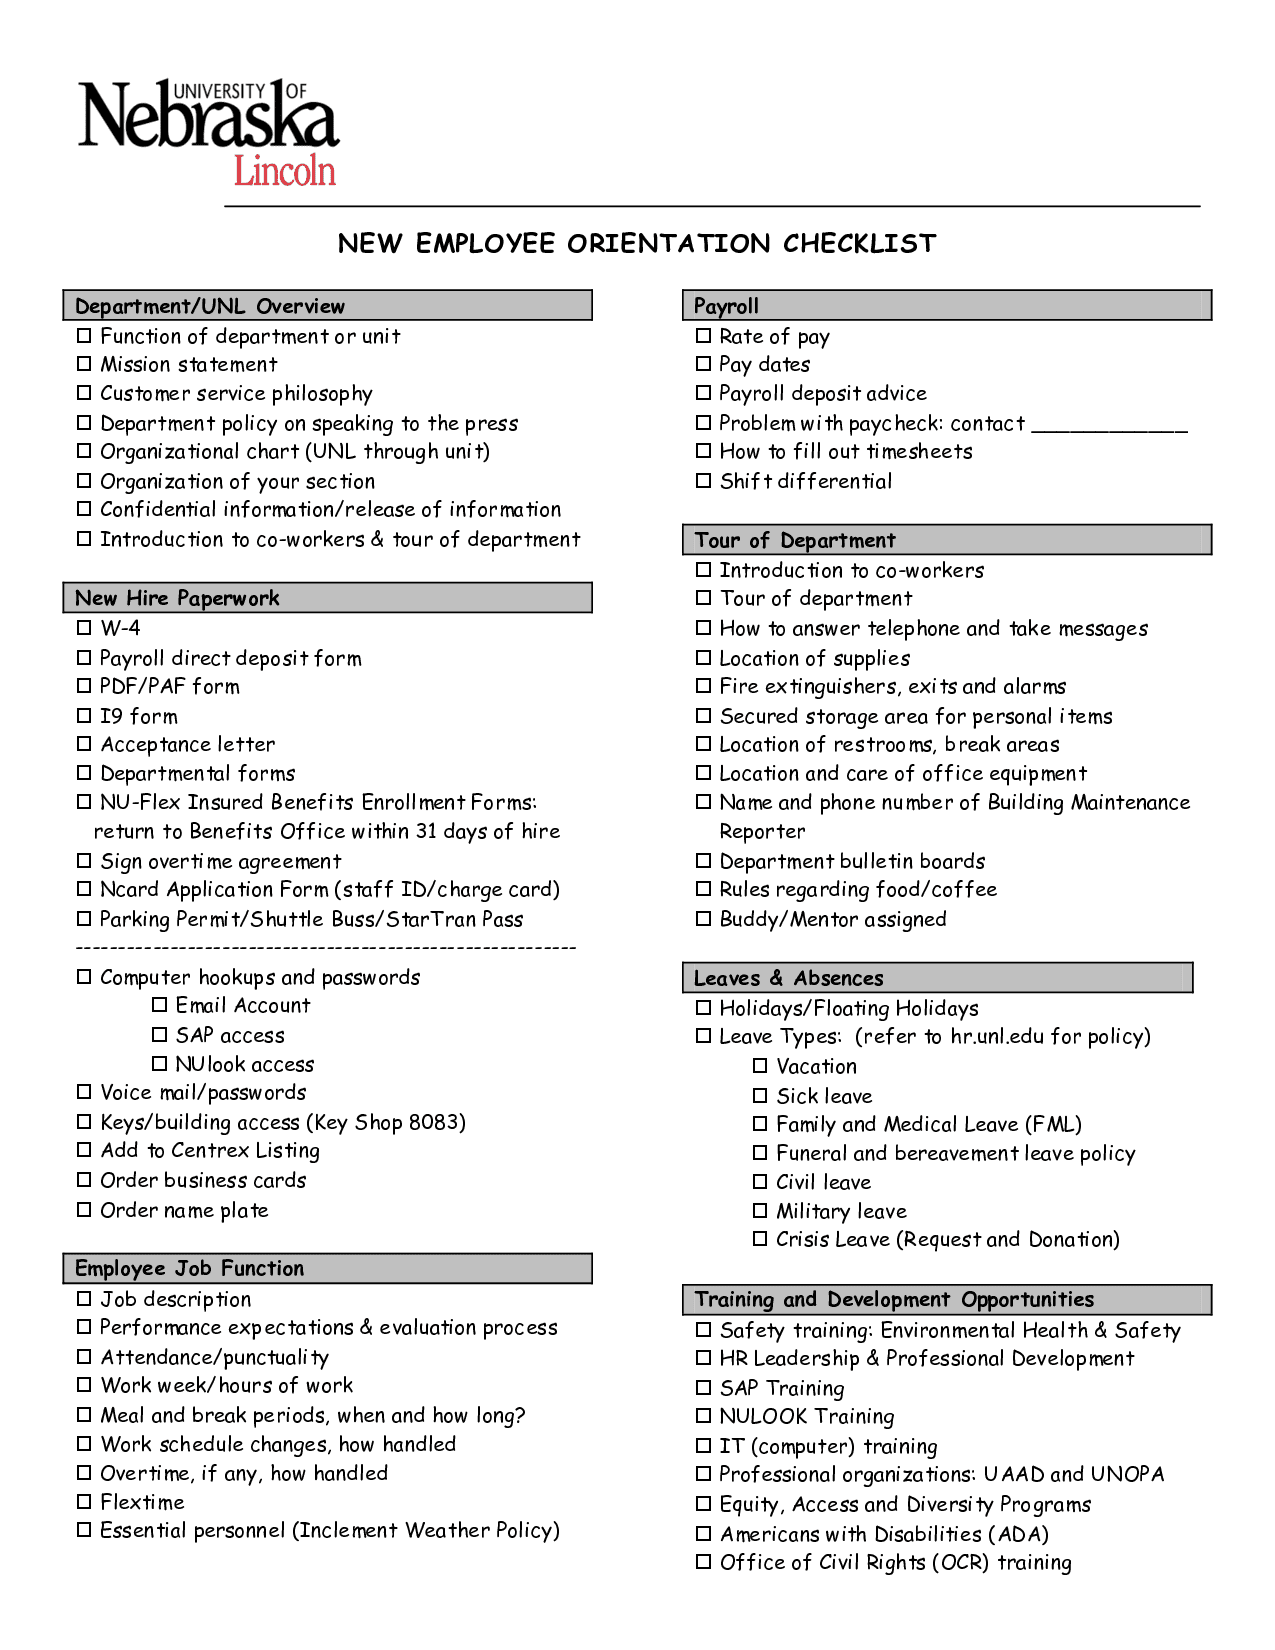 Funeral Planning Checklist Form And Printable Funeral Planning Checklist